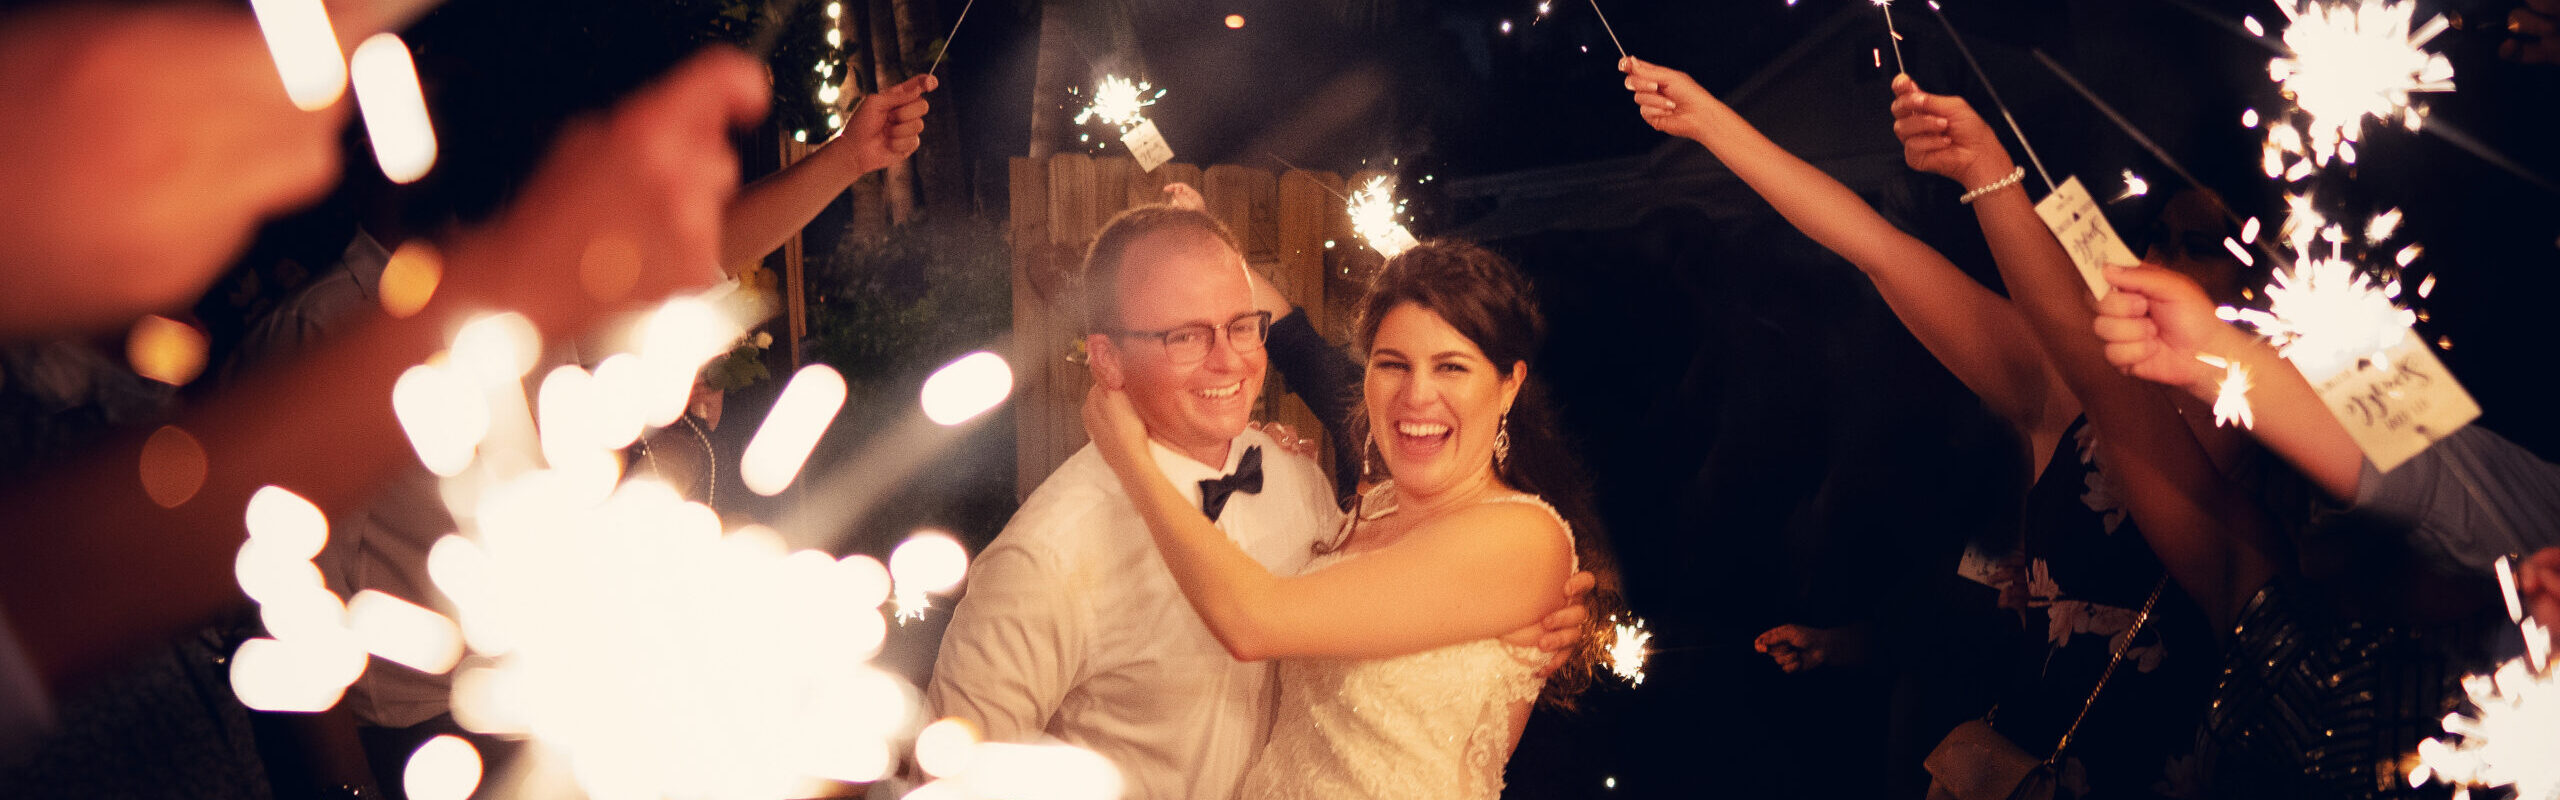 Newlyweds walking among sparkle lights on their wedding day